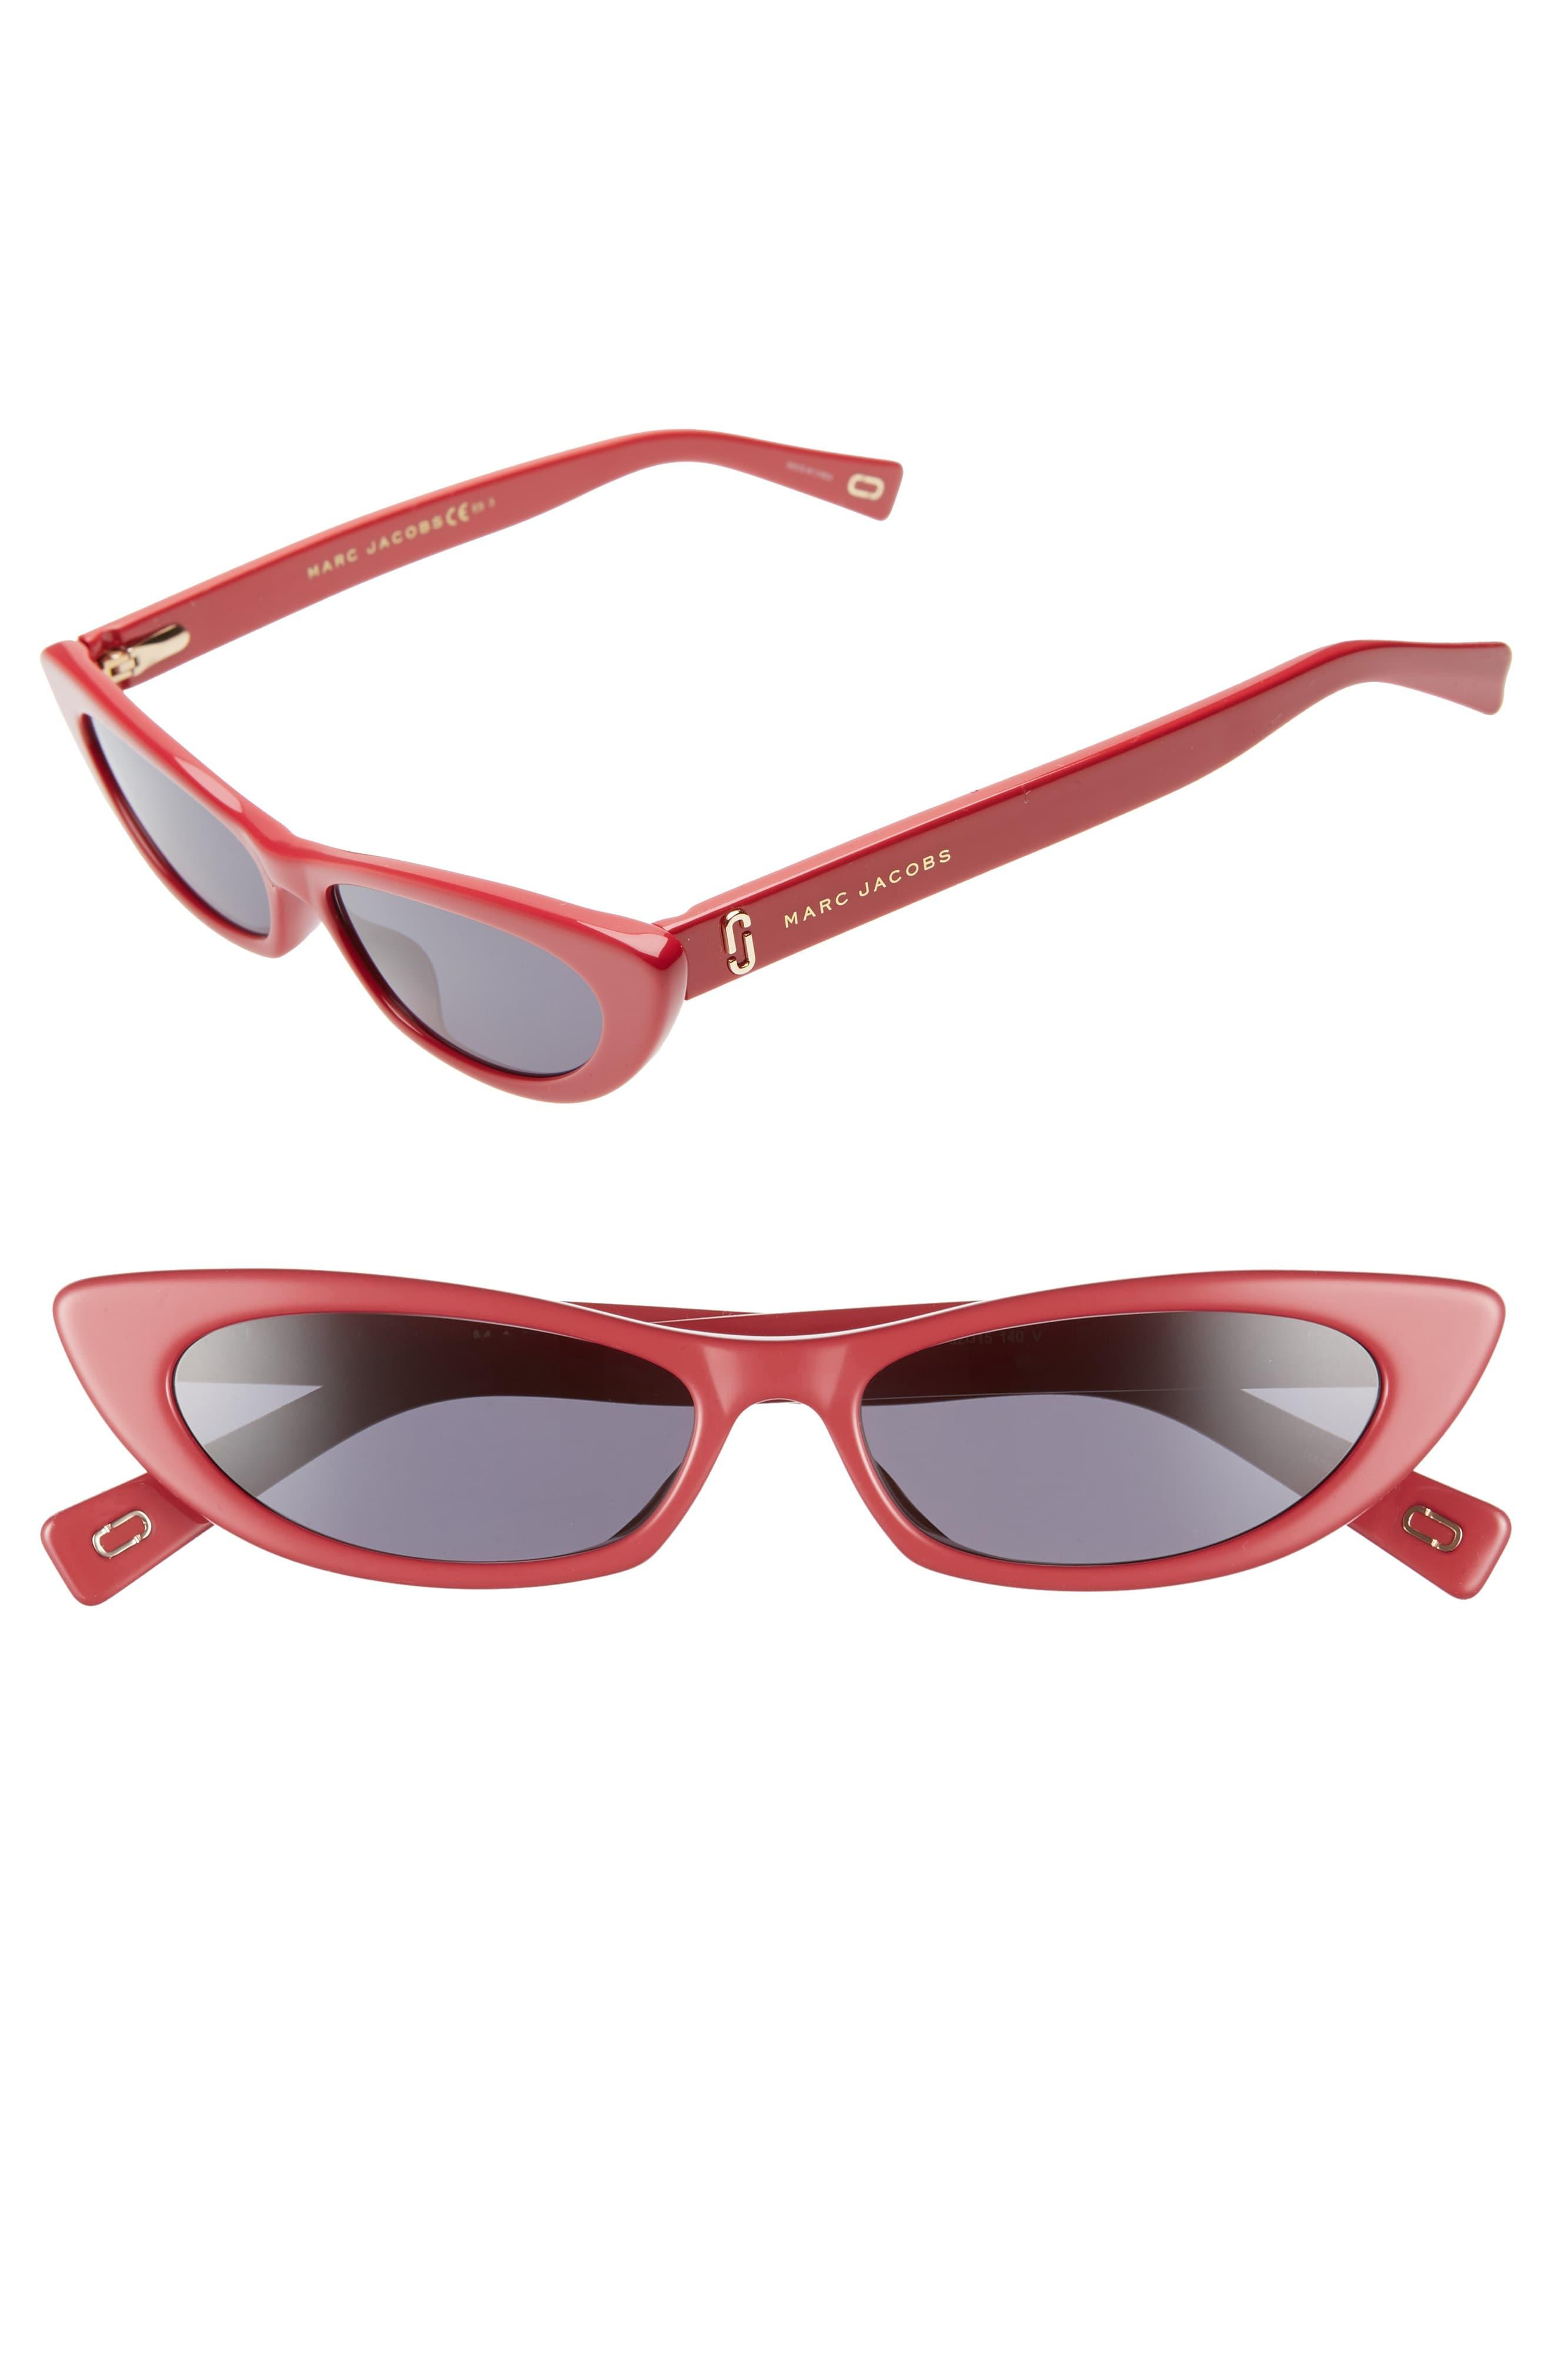 2c11b76f638e Marc Jacobs 52mm Cat Eye Sunglasses in Red - Lyst